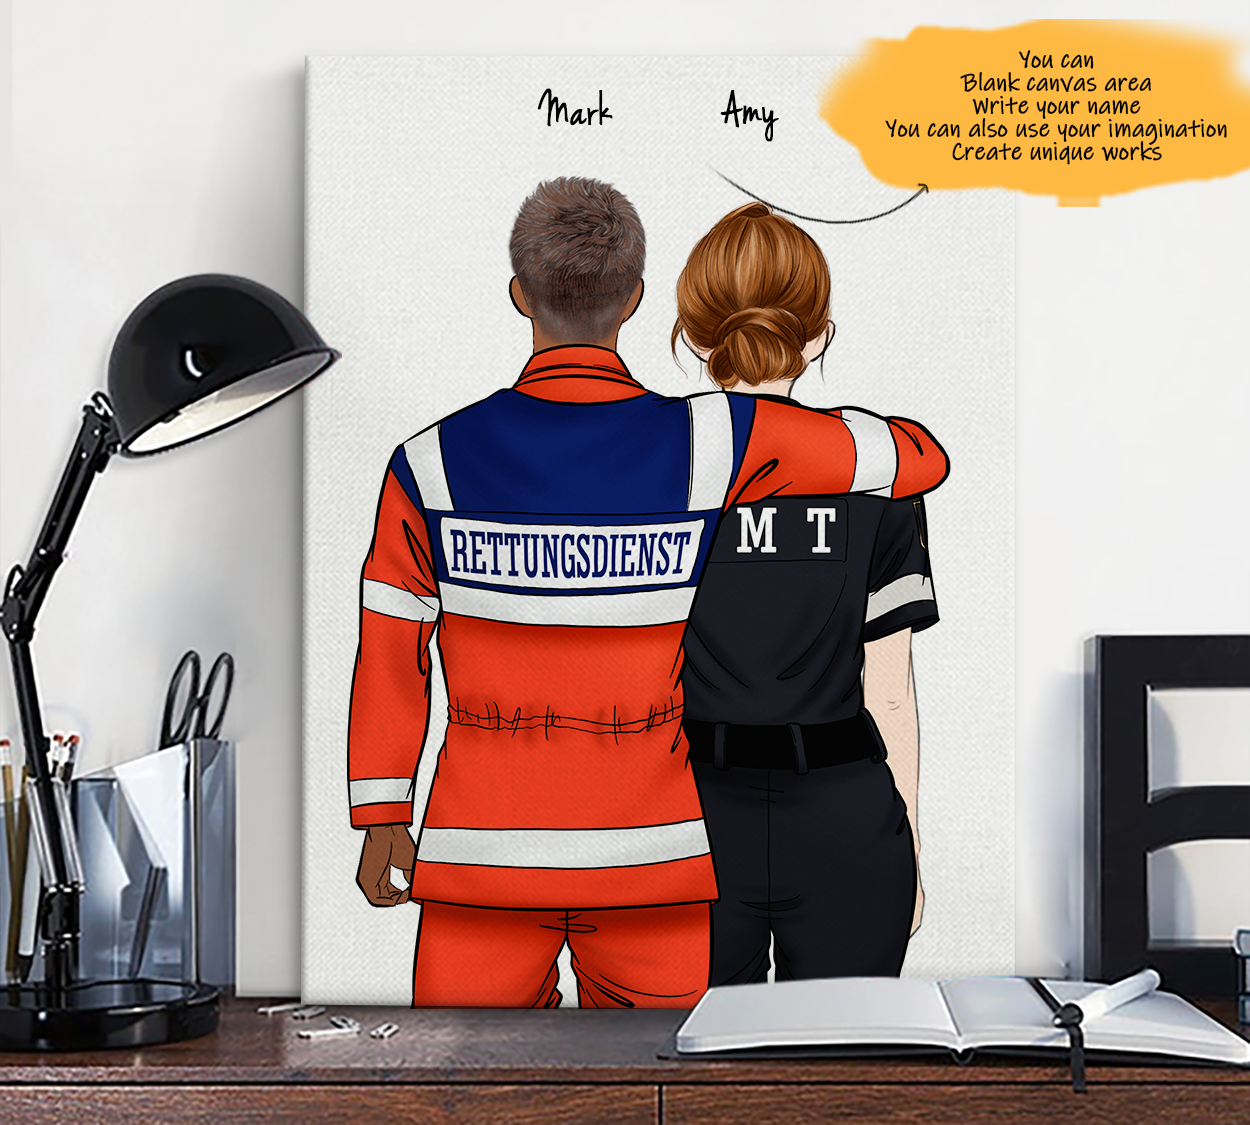 He is My Friend! Hand Draw Custom Canvas-Print Gift AmbulanceDriverGermany-Dark&EMT